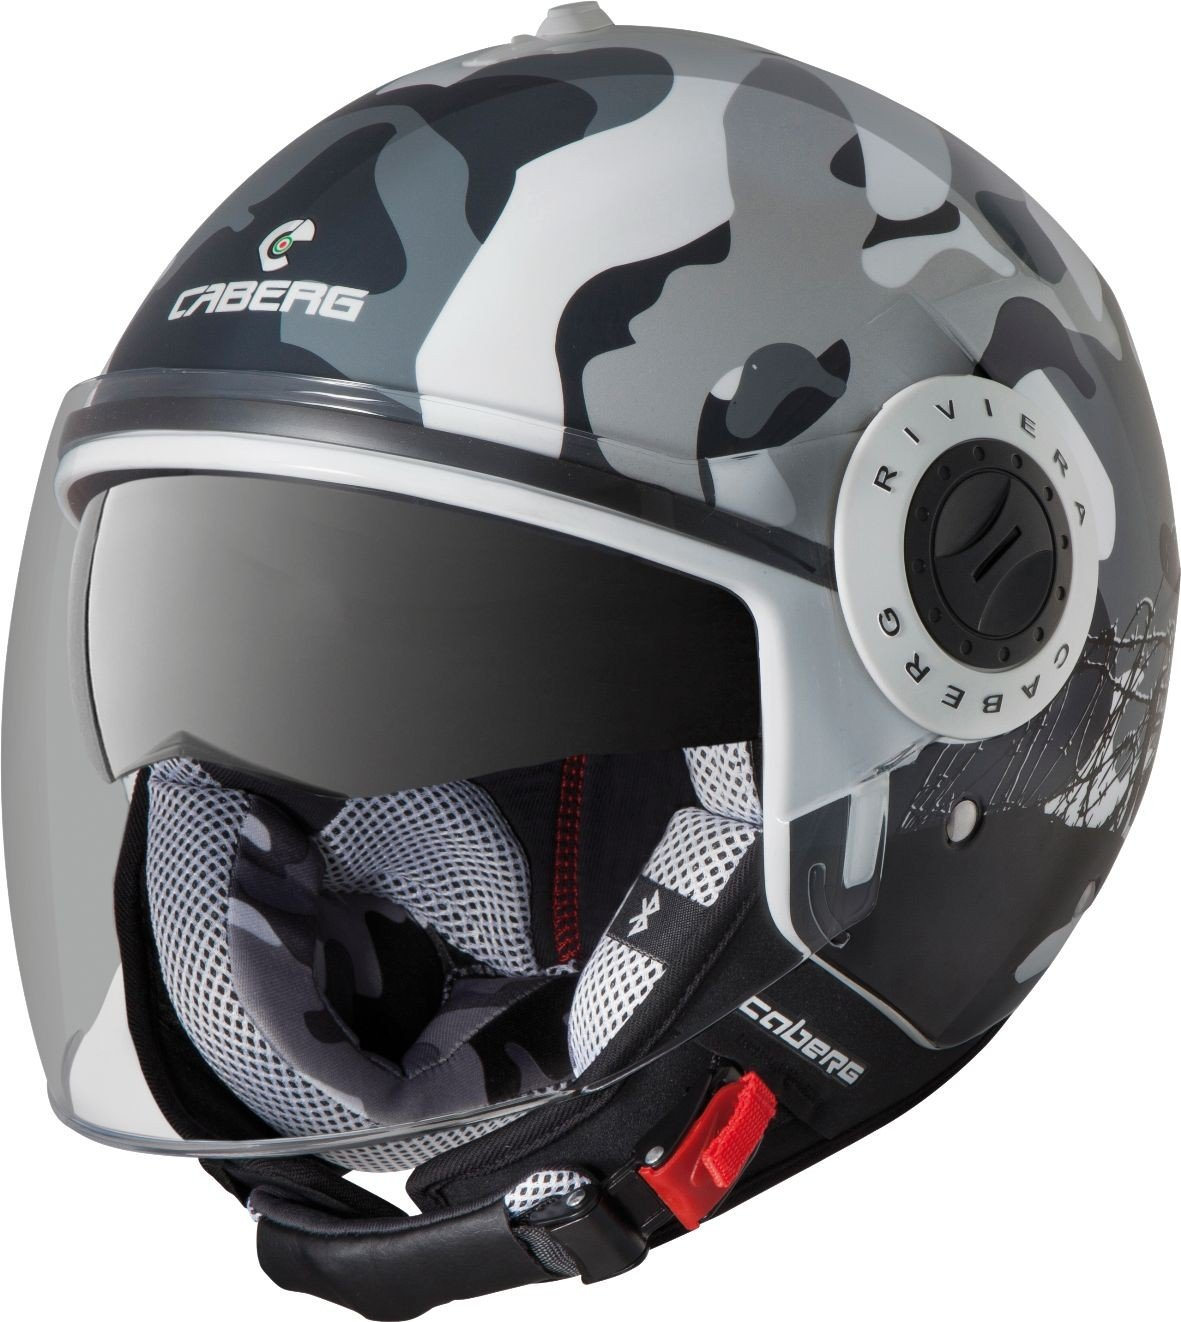 Amazon.com: Caberg Riviera V2+ Open Face Motorcycle Helmet Commander Small: Automotive